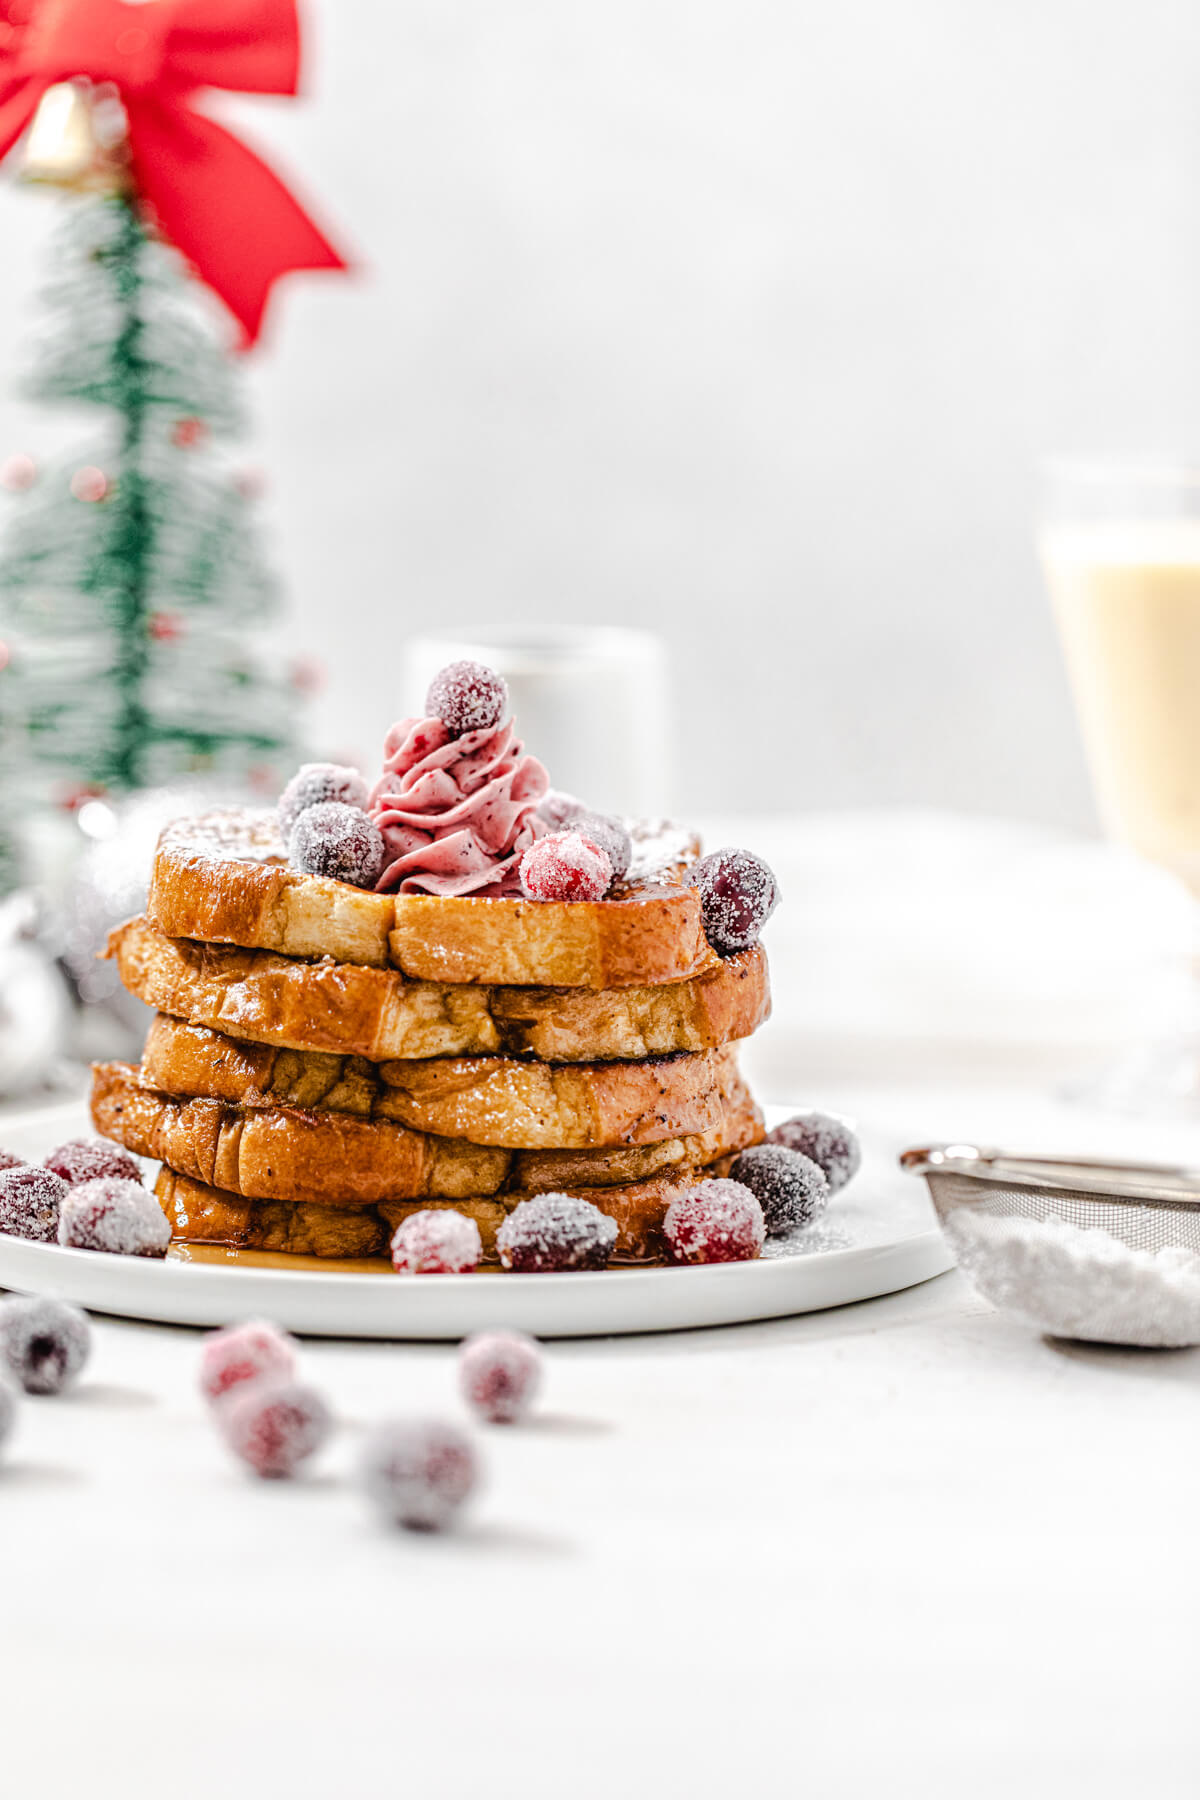 stack of French toast topped with sugared cranberries on a white plate